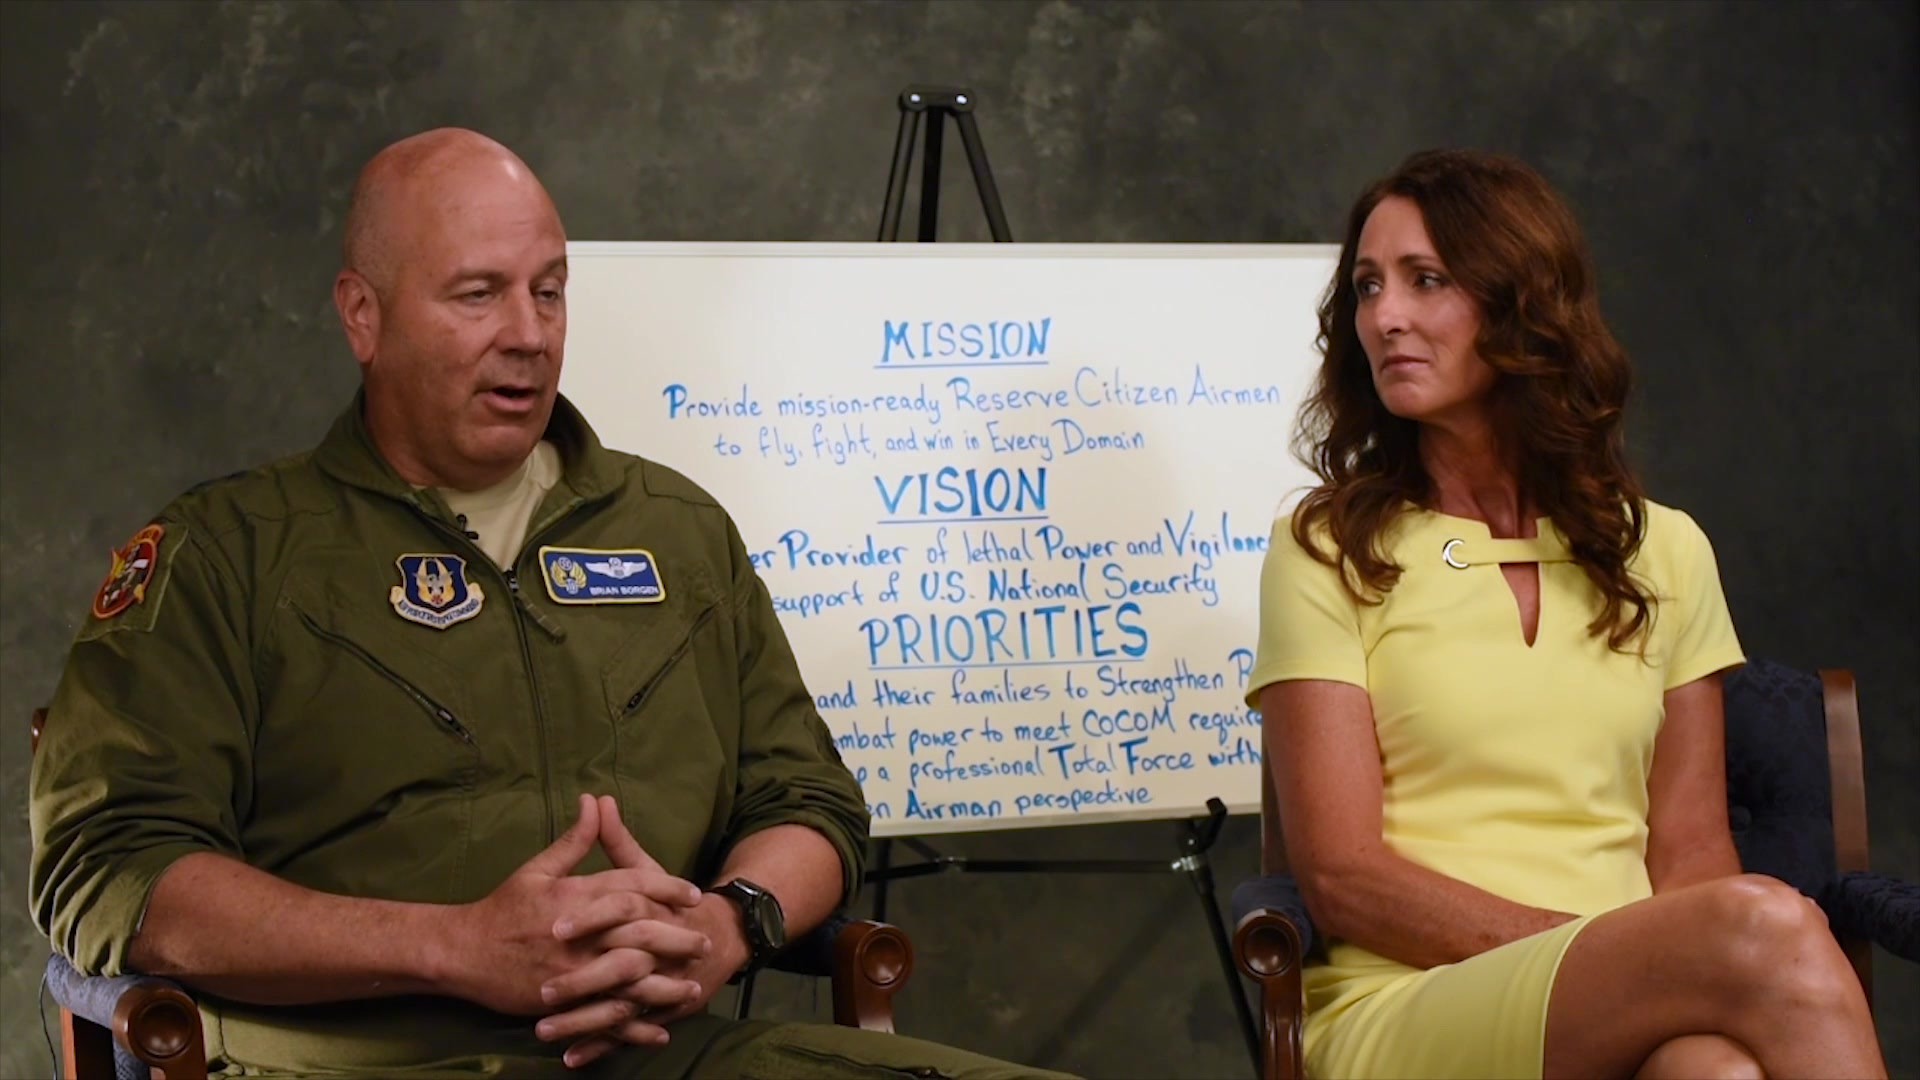 In the July Commentary, Maj. Gen. Brian Borgen, 10th Air Force Commander, discusses his first two months in command, his mission vision and priorities and servant leadership. Also, Mrs. Mary Borgen, 10th Air Force Key Spouse, discusses the Key Spouse Program and her priorities for the program.